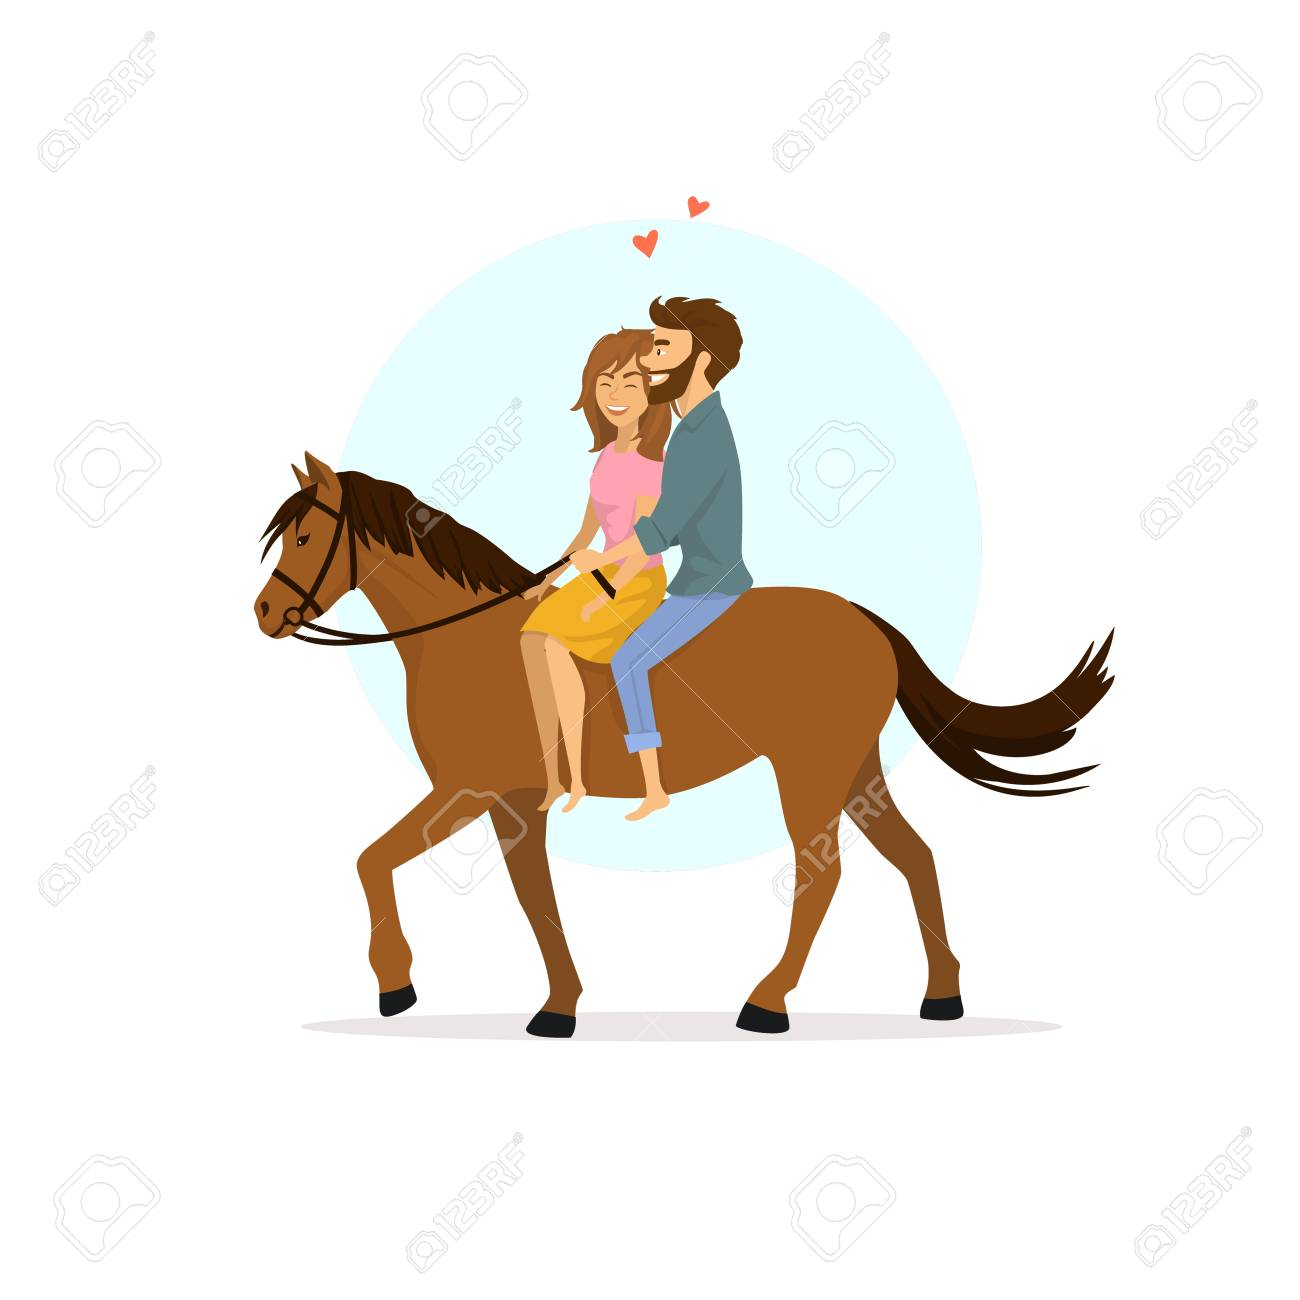 Cute Romantic Cartoon Couple In Love Horseback Riding Royalty Free Cliparts Vectors And Stock Illustration Image 94464893